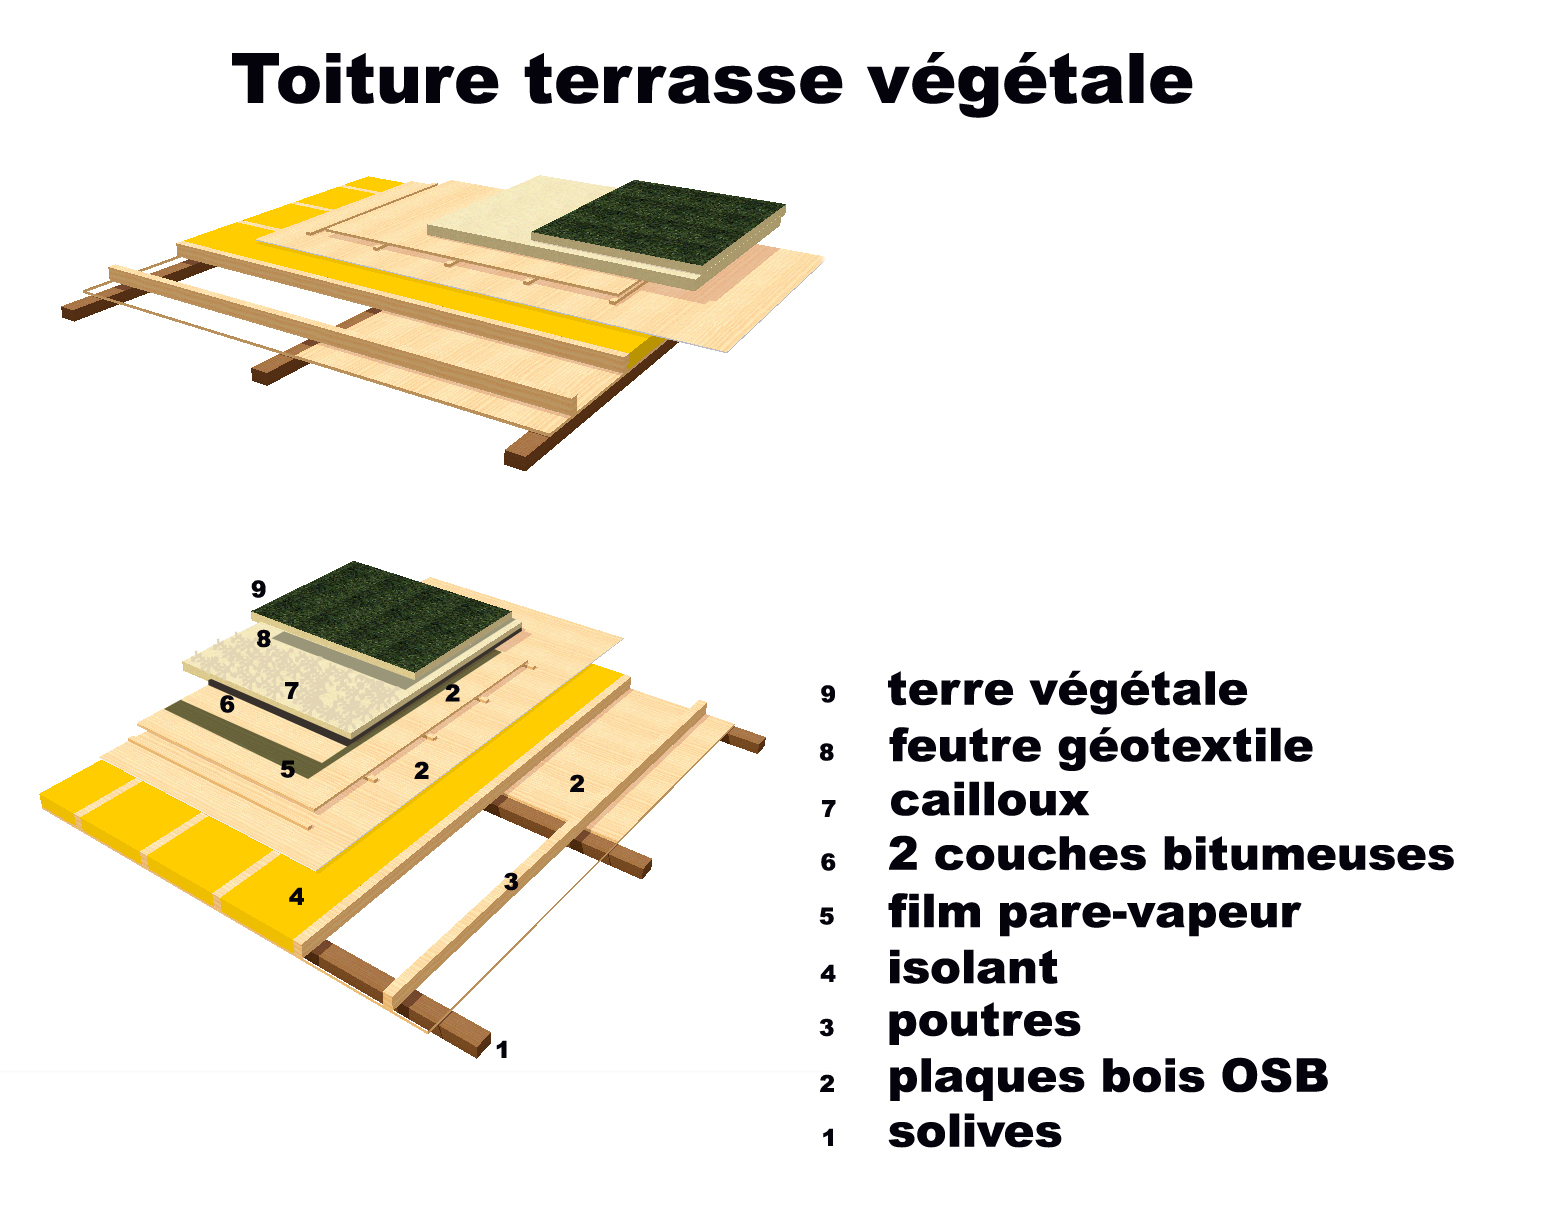 toit terrasse vegetal plan maison contemporaine. Black Bedroom Furniture Sets. Home Design Ideas